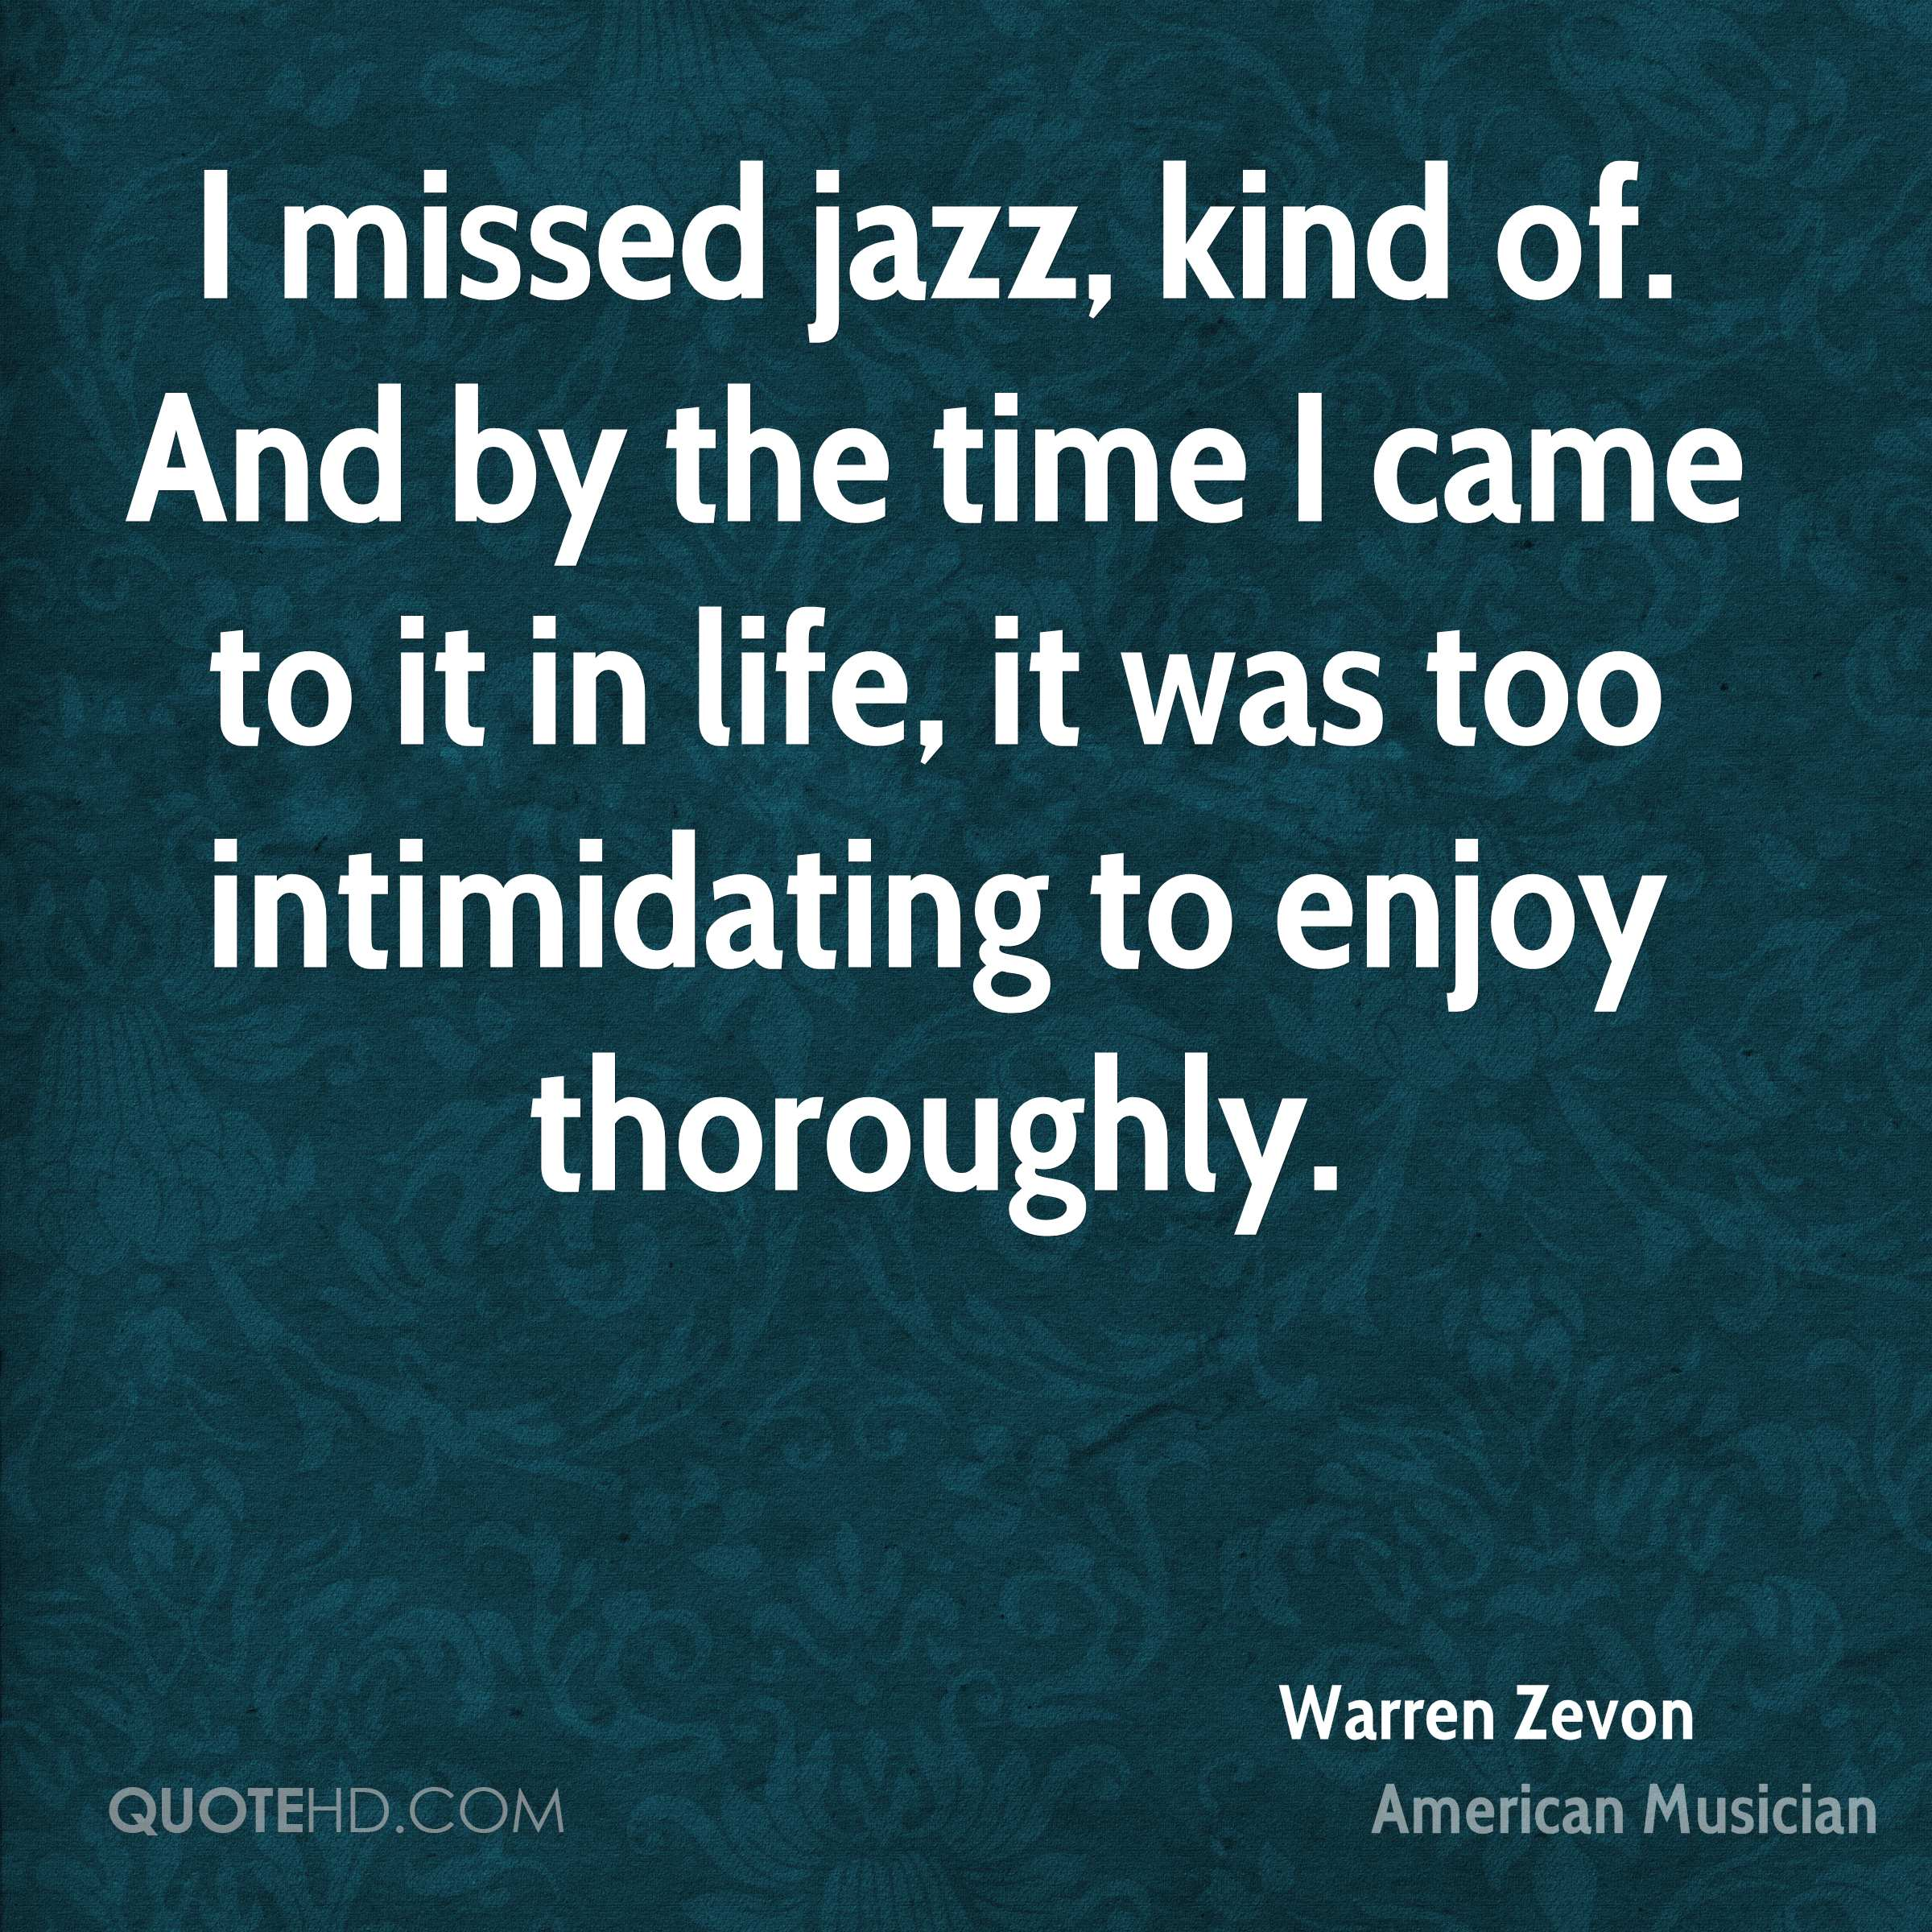 I missed jazz, kind of. And by the time I came to it in life, it was too intimidating to enjoy thoroughly.